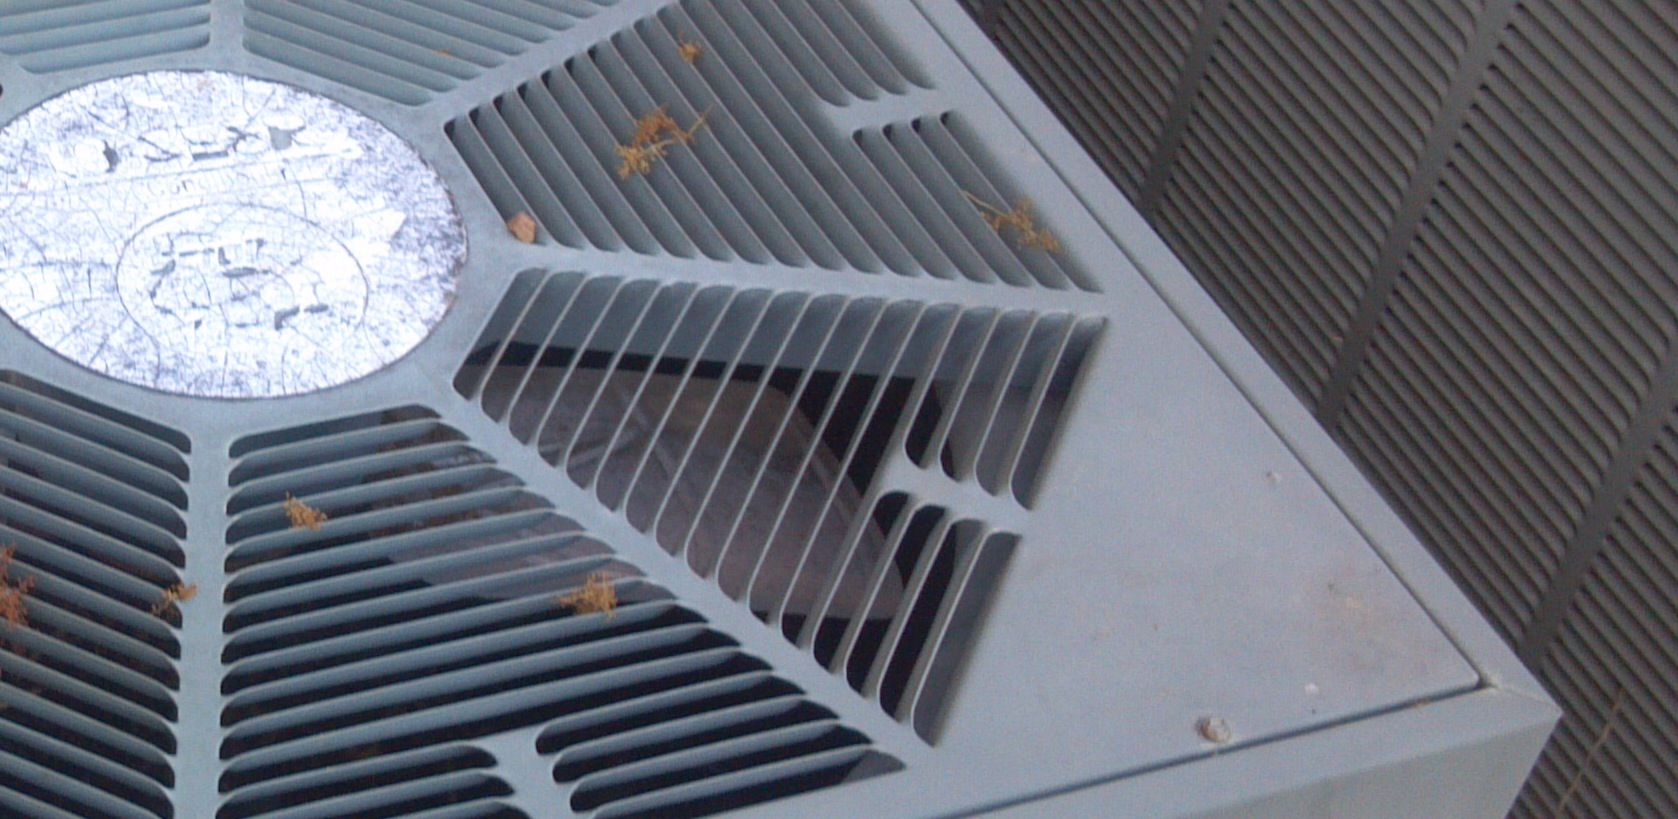 AC repair in Austin, TX doesn't need to be complicated